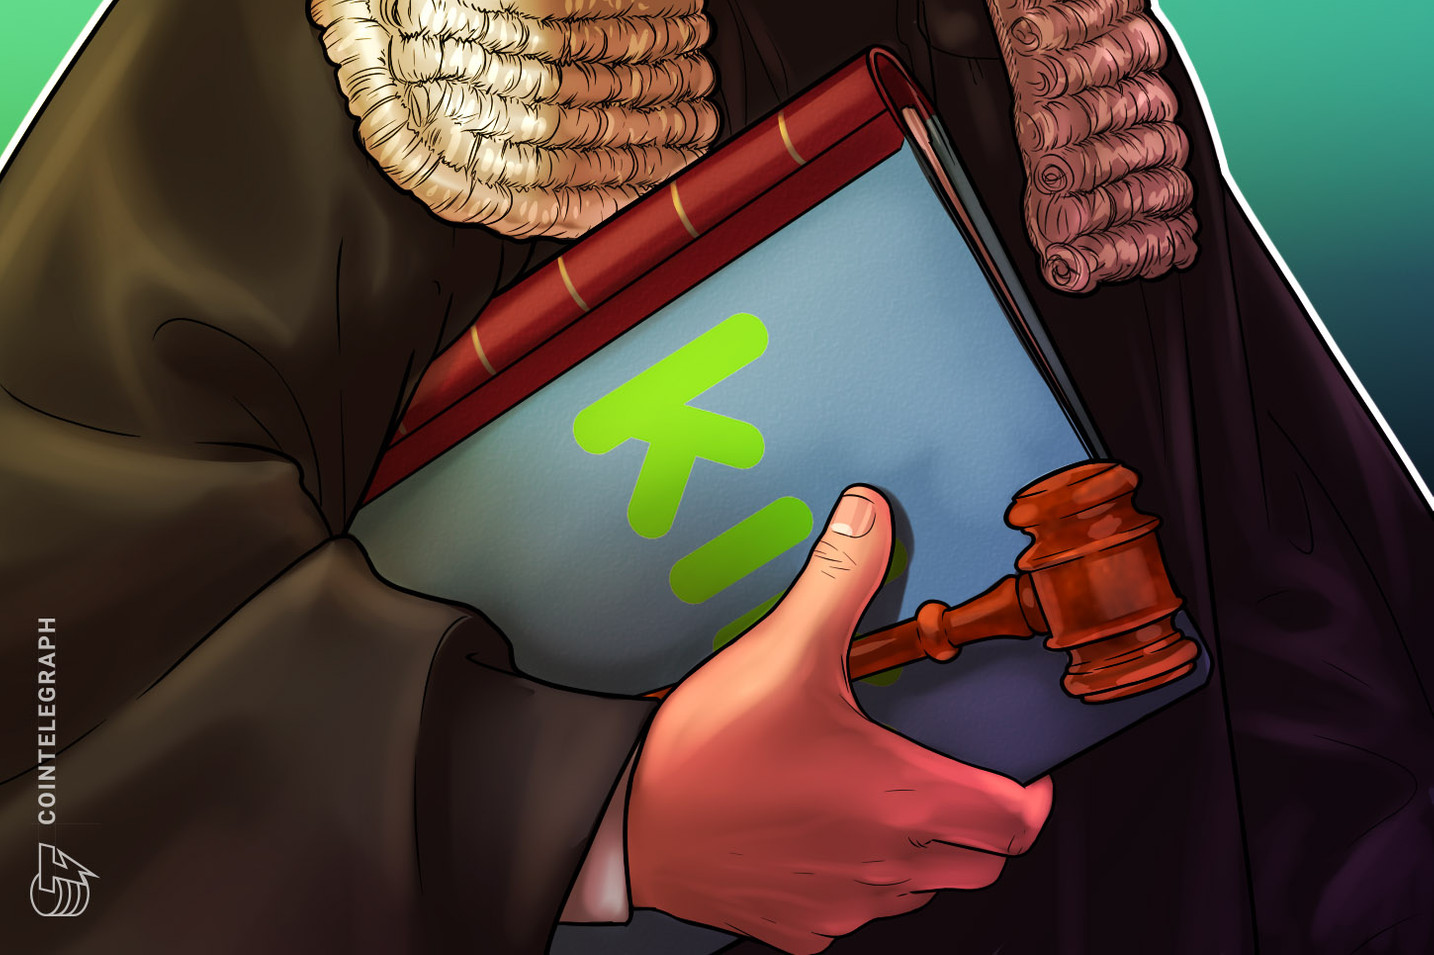 Court rules Kik's 2017 ICO violated U.S. securities laws